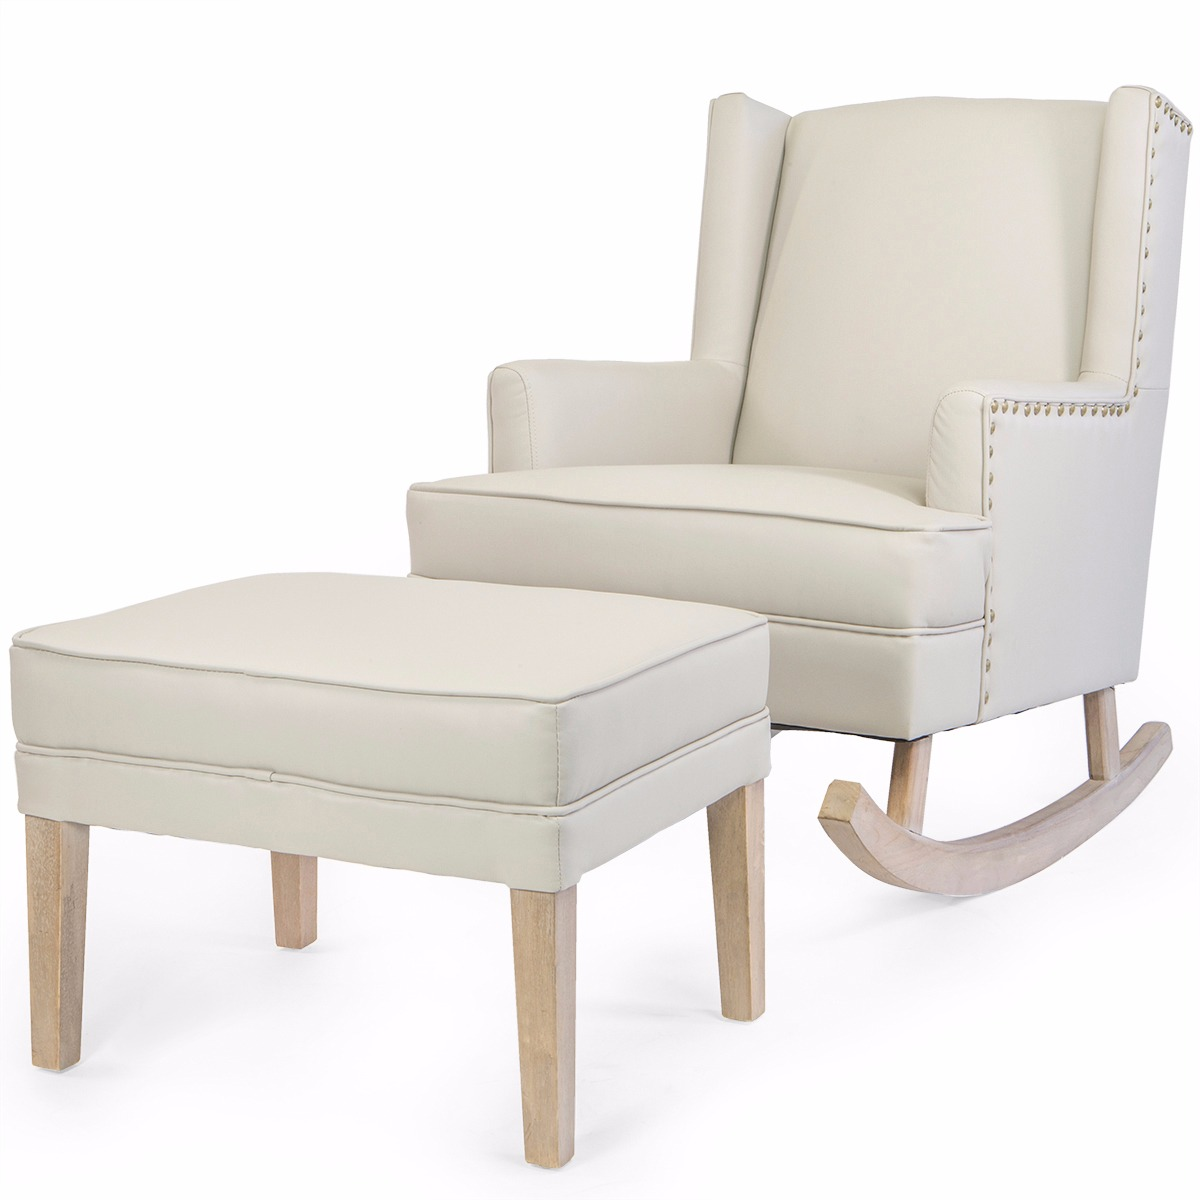 Barton Leather Rocking Chair Glider & Ottoman Set with Cushion, Beige by BARTON